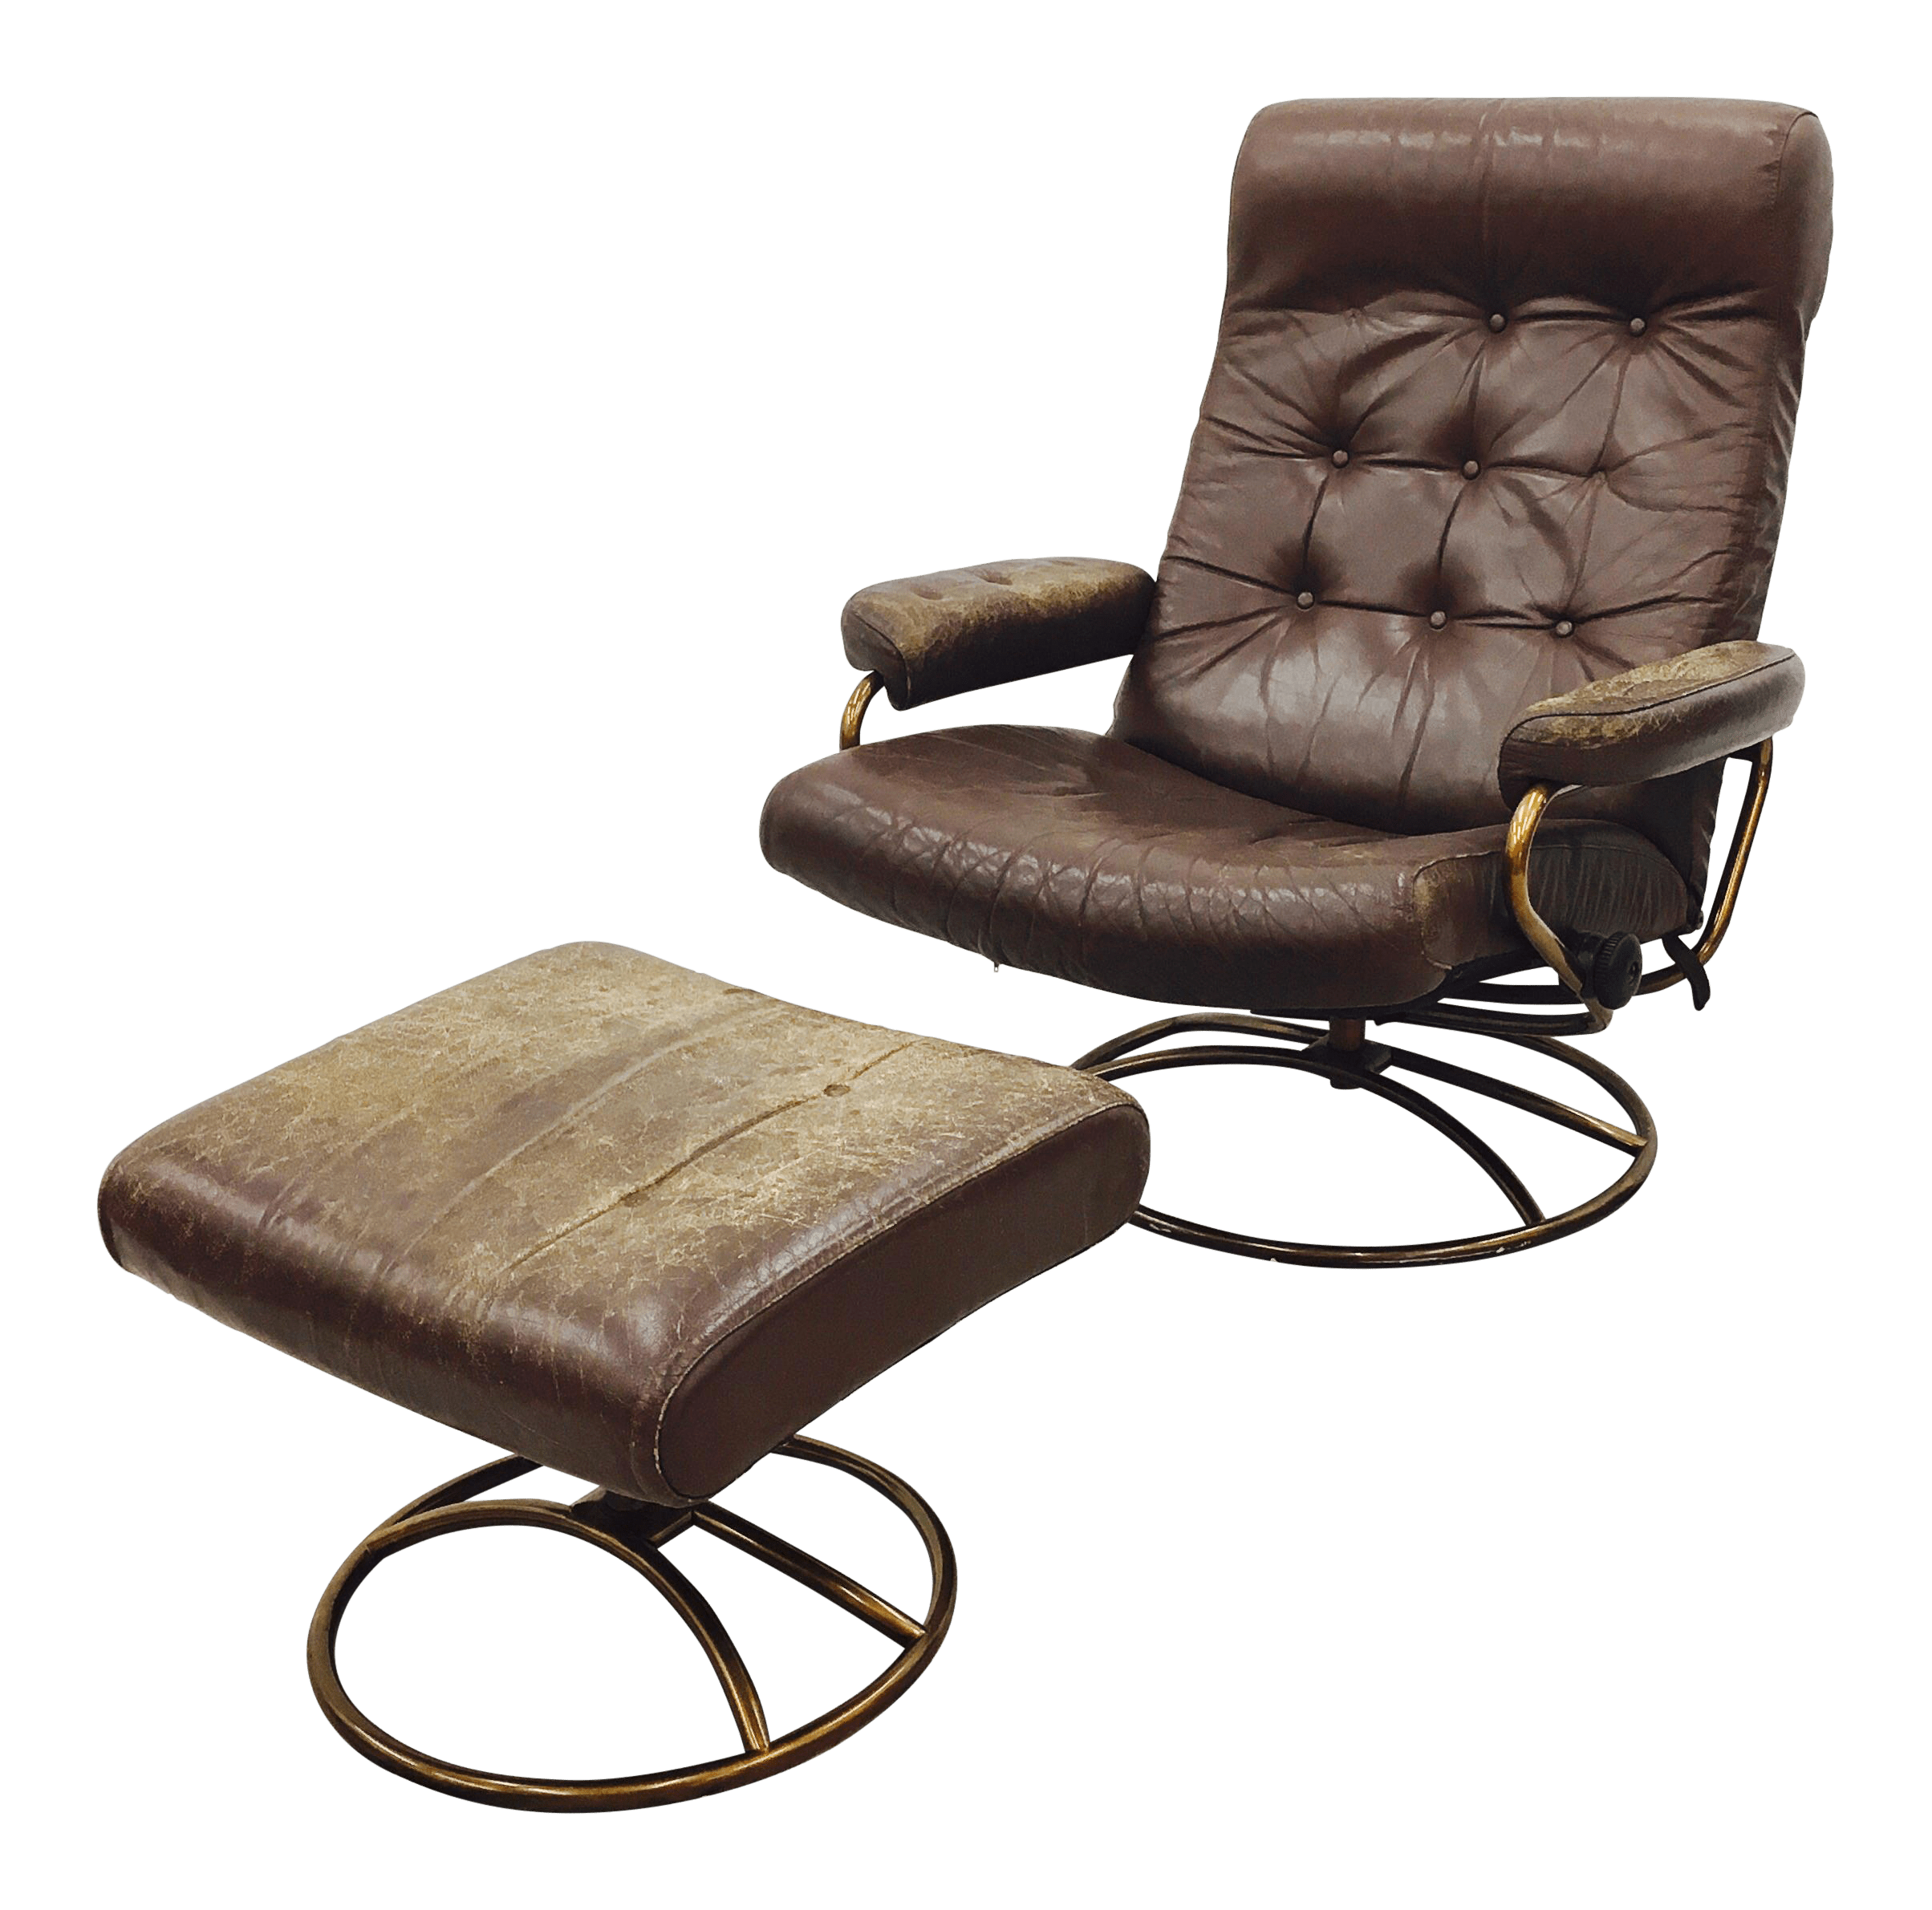 Fauteuil Stressless Taurus Ekornes Chair Ekornes Chair Pair Of Leather And Wood